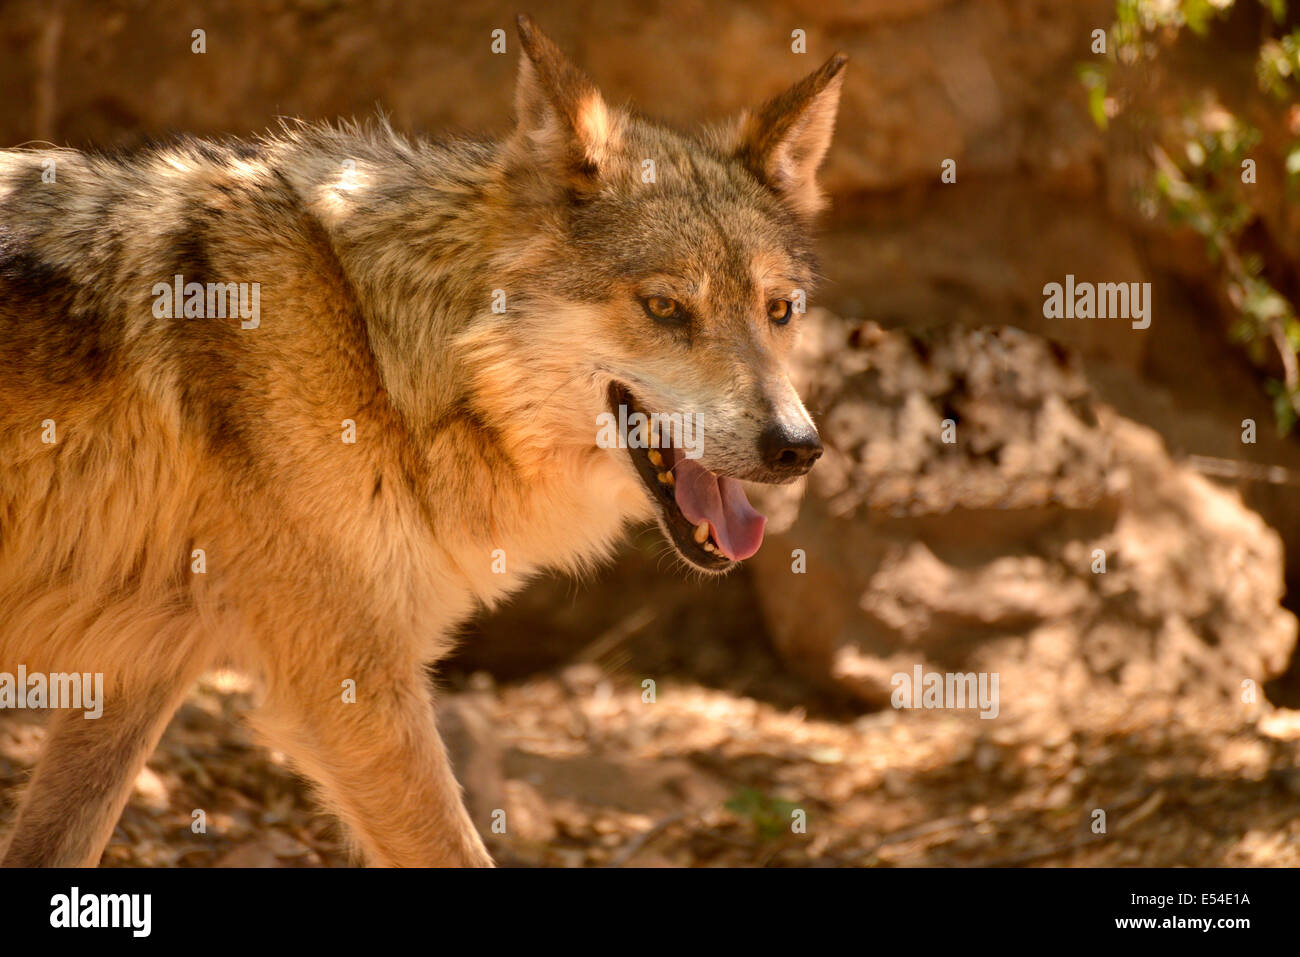 A Mexican Grey Wolf, (Canis lupus spp. baileyi), resides at the Arizona-Sonora Desert Museum, Tucson, Arizona, USA. - Stock Image